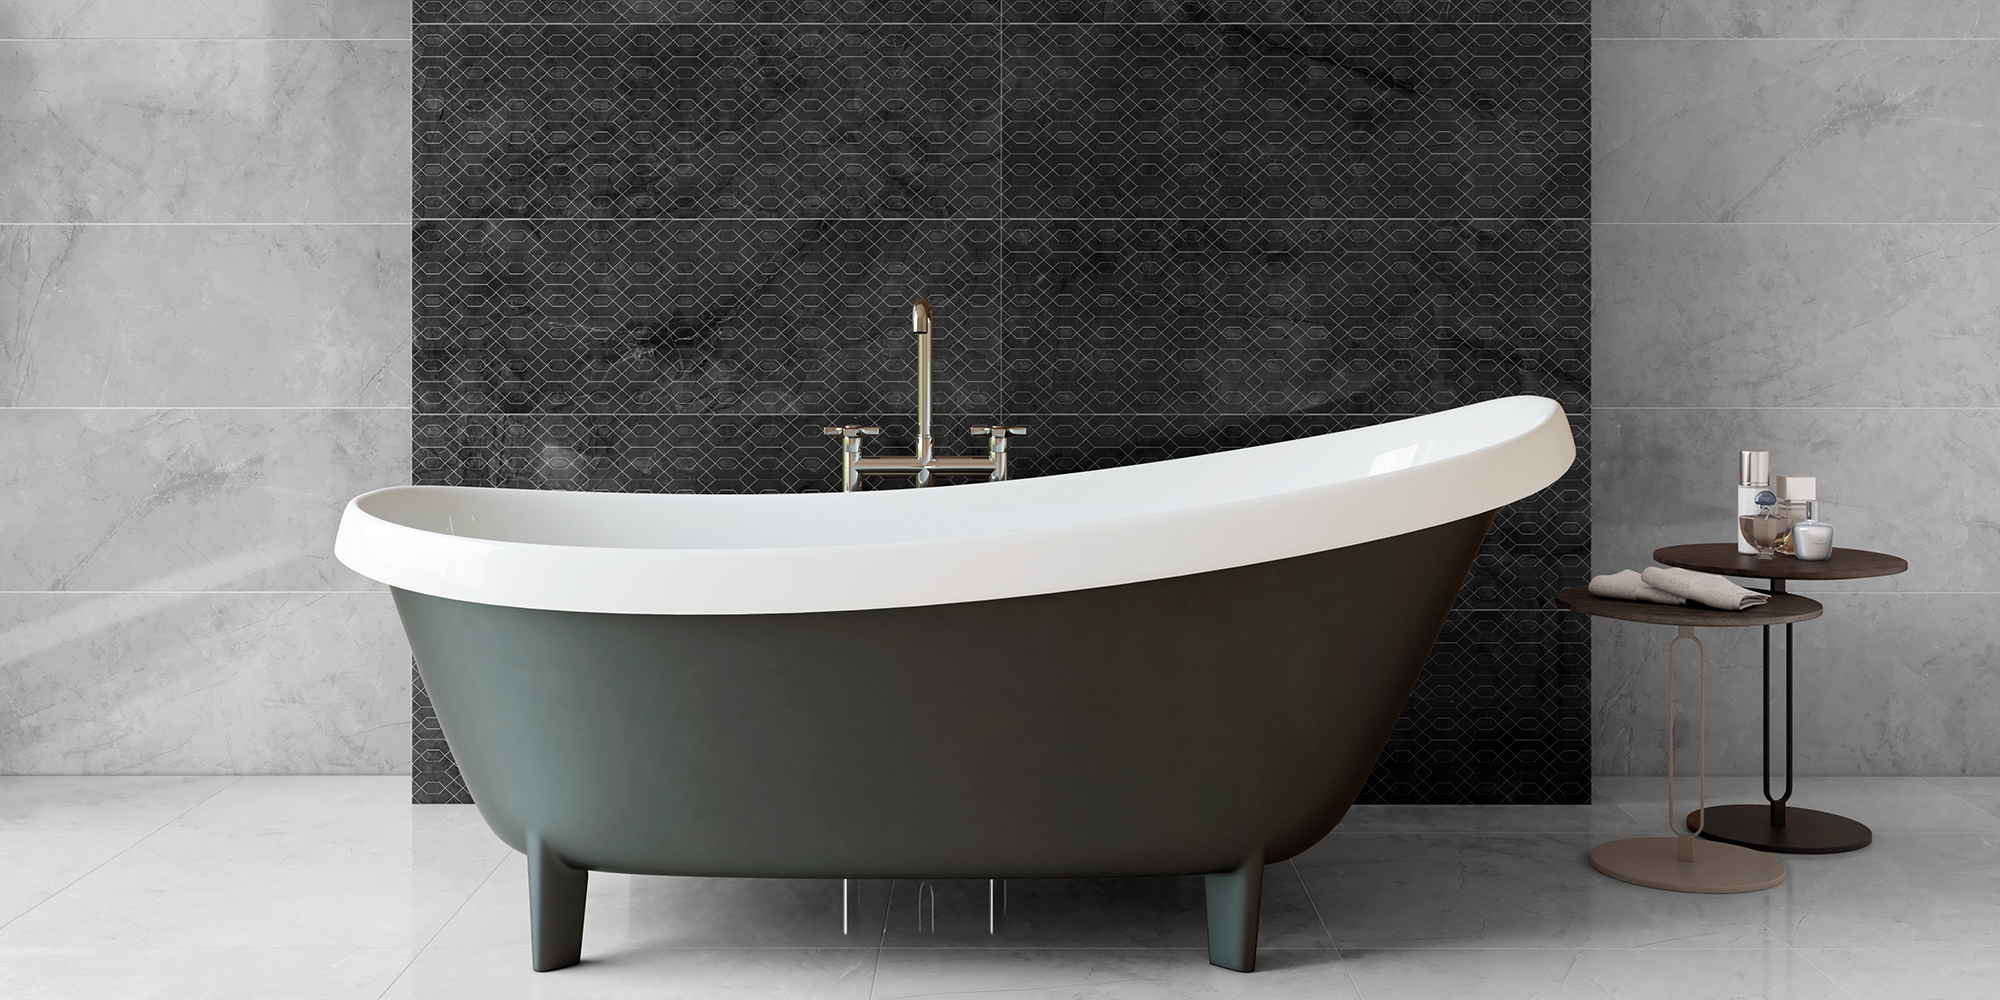 Metissage 33x100 / 60x60. High gloss finish, large format, stone look wall and floor tiles for bathroom.